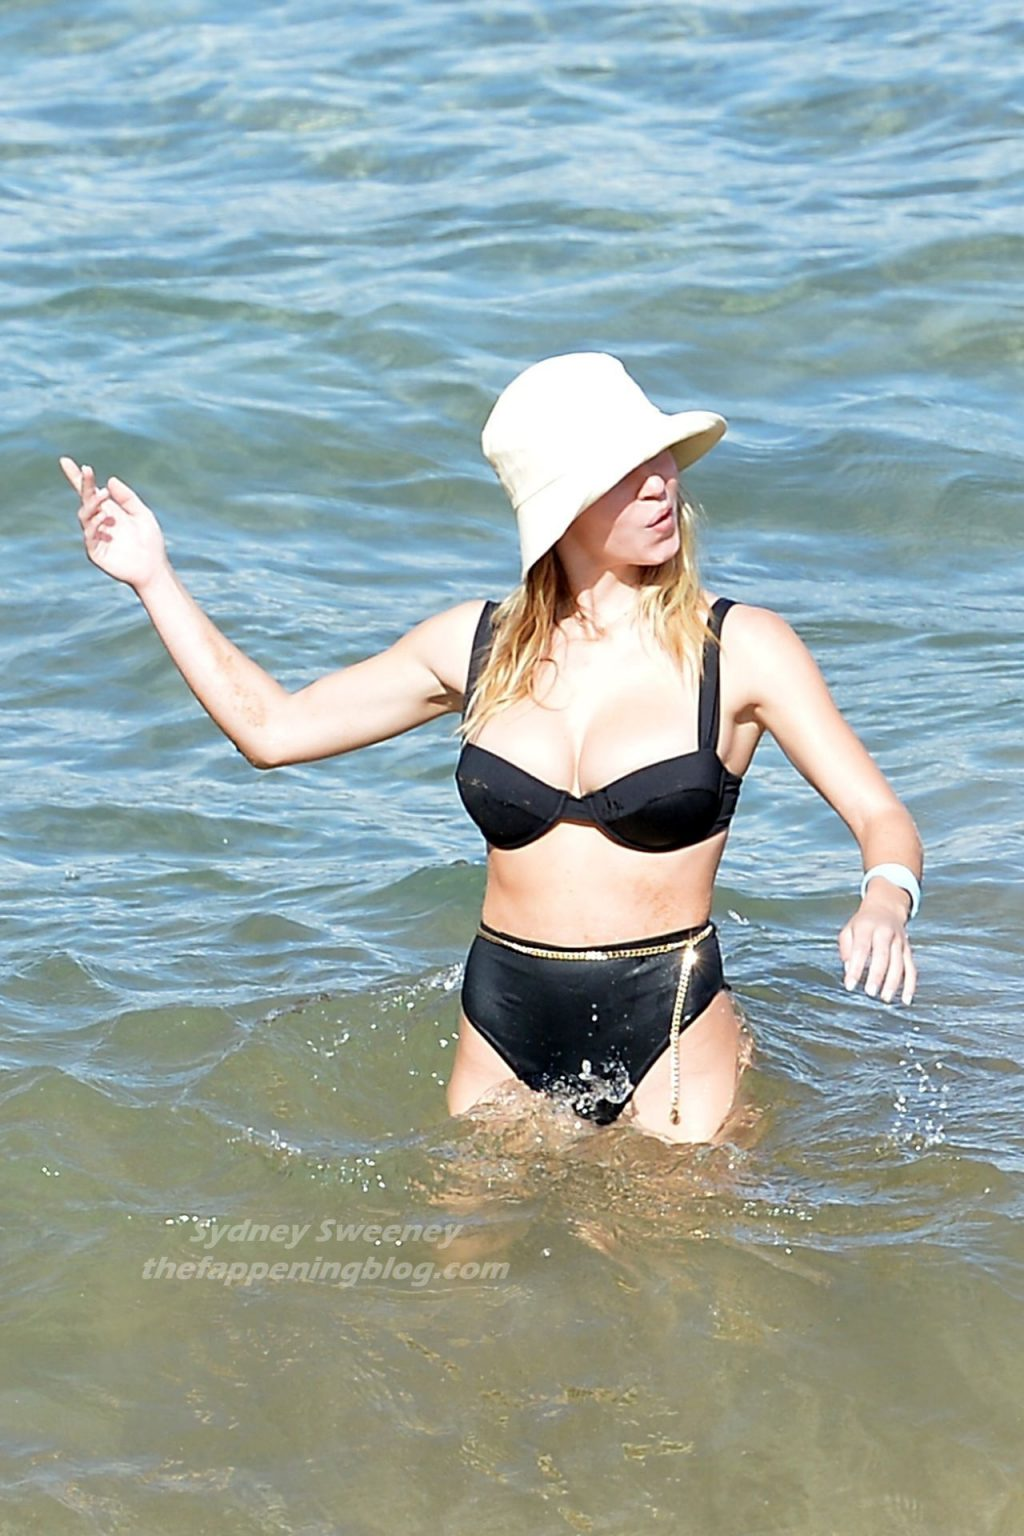 Sydney Sweeney is Spotted Packing on the PDA with a Mystery Man in Hawaii (28 Photos)